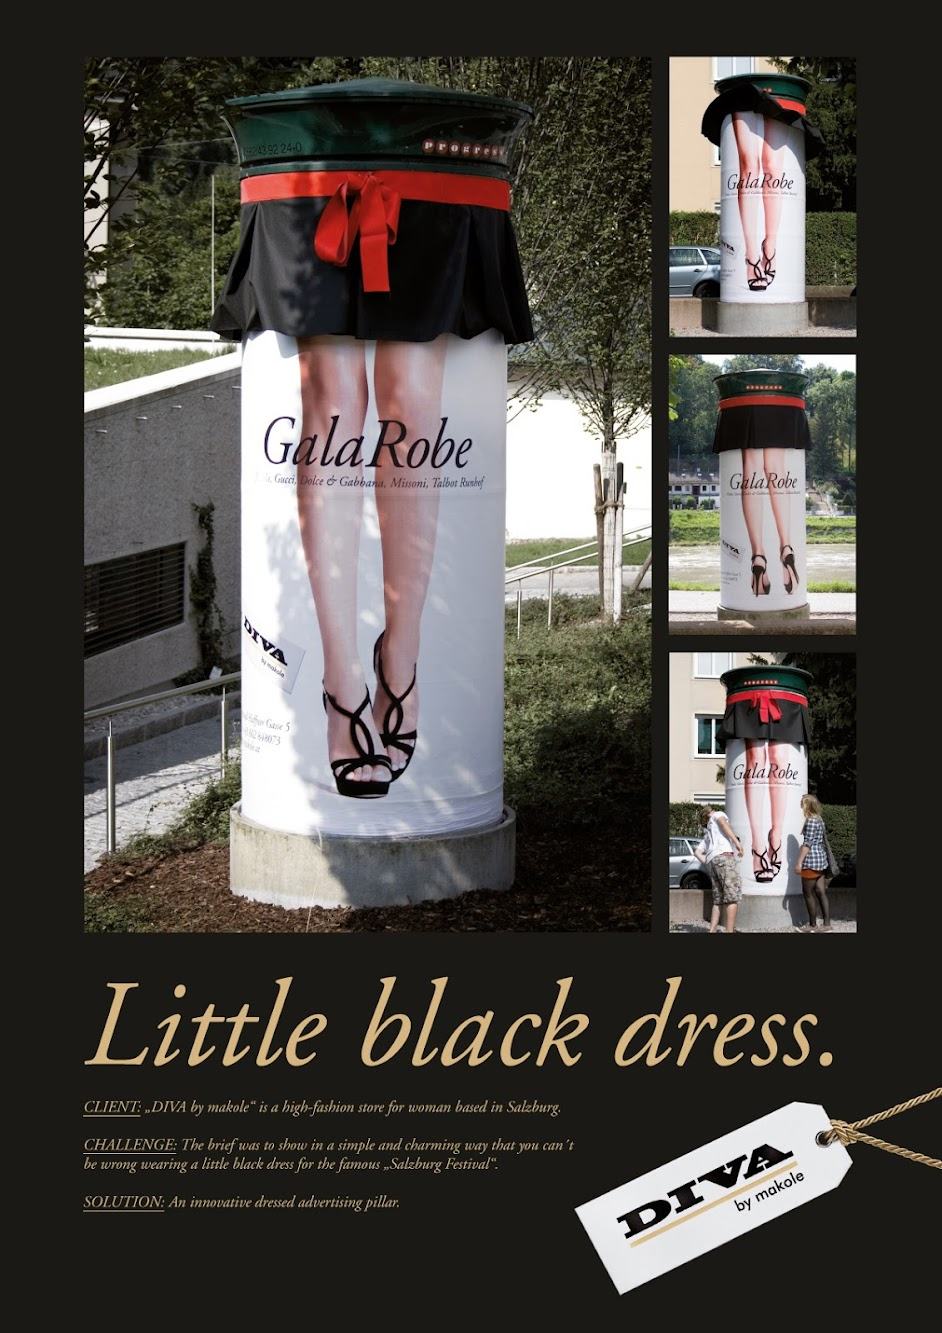 That Little Black Dress Found It's Way On To A Pillar